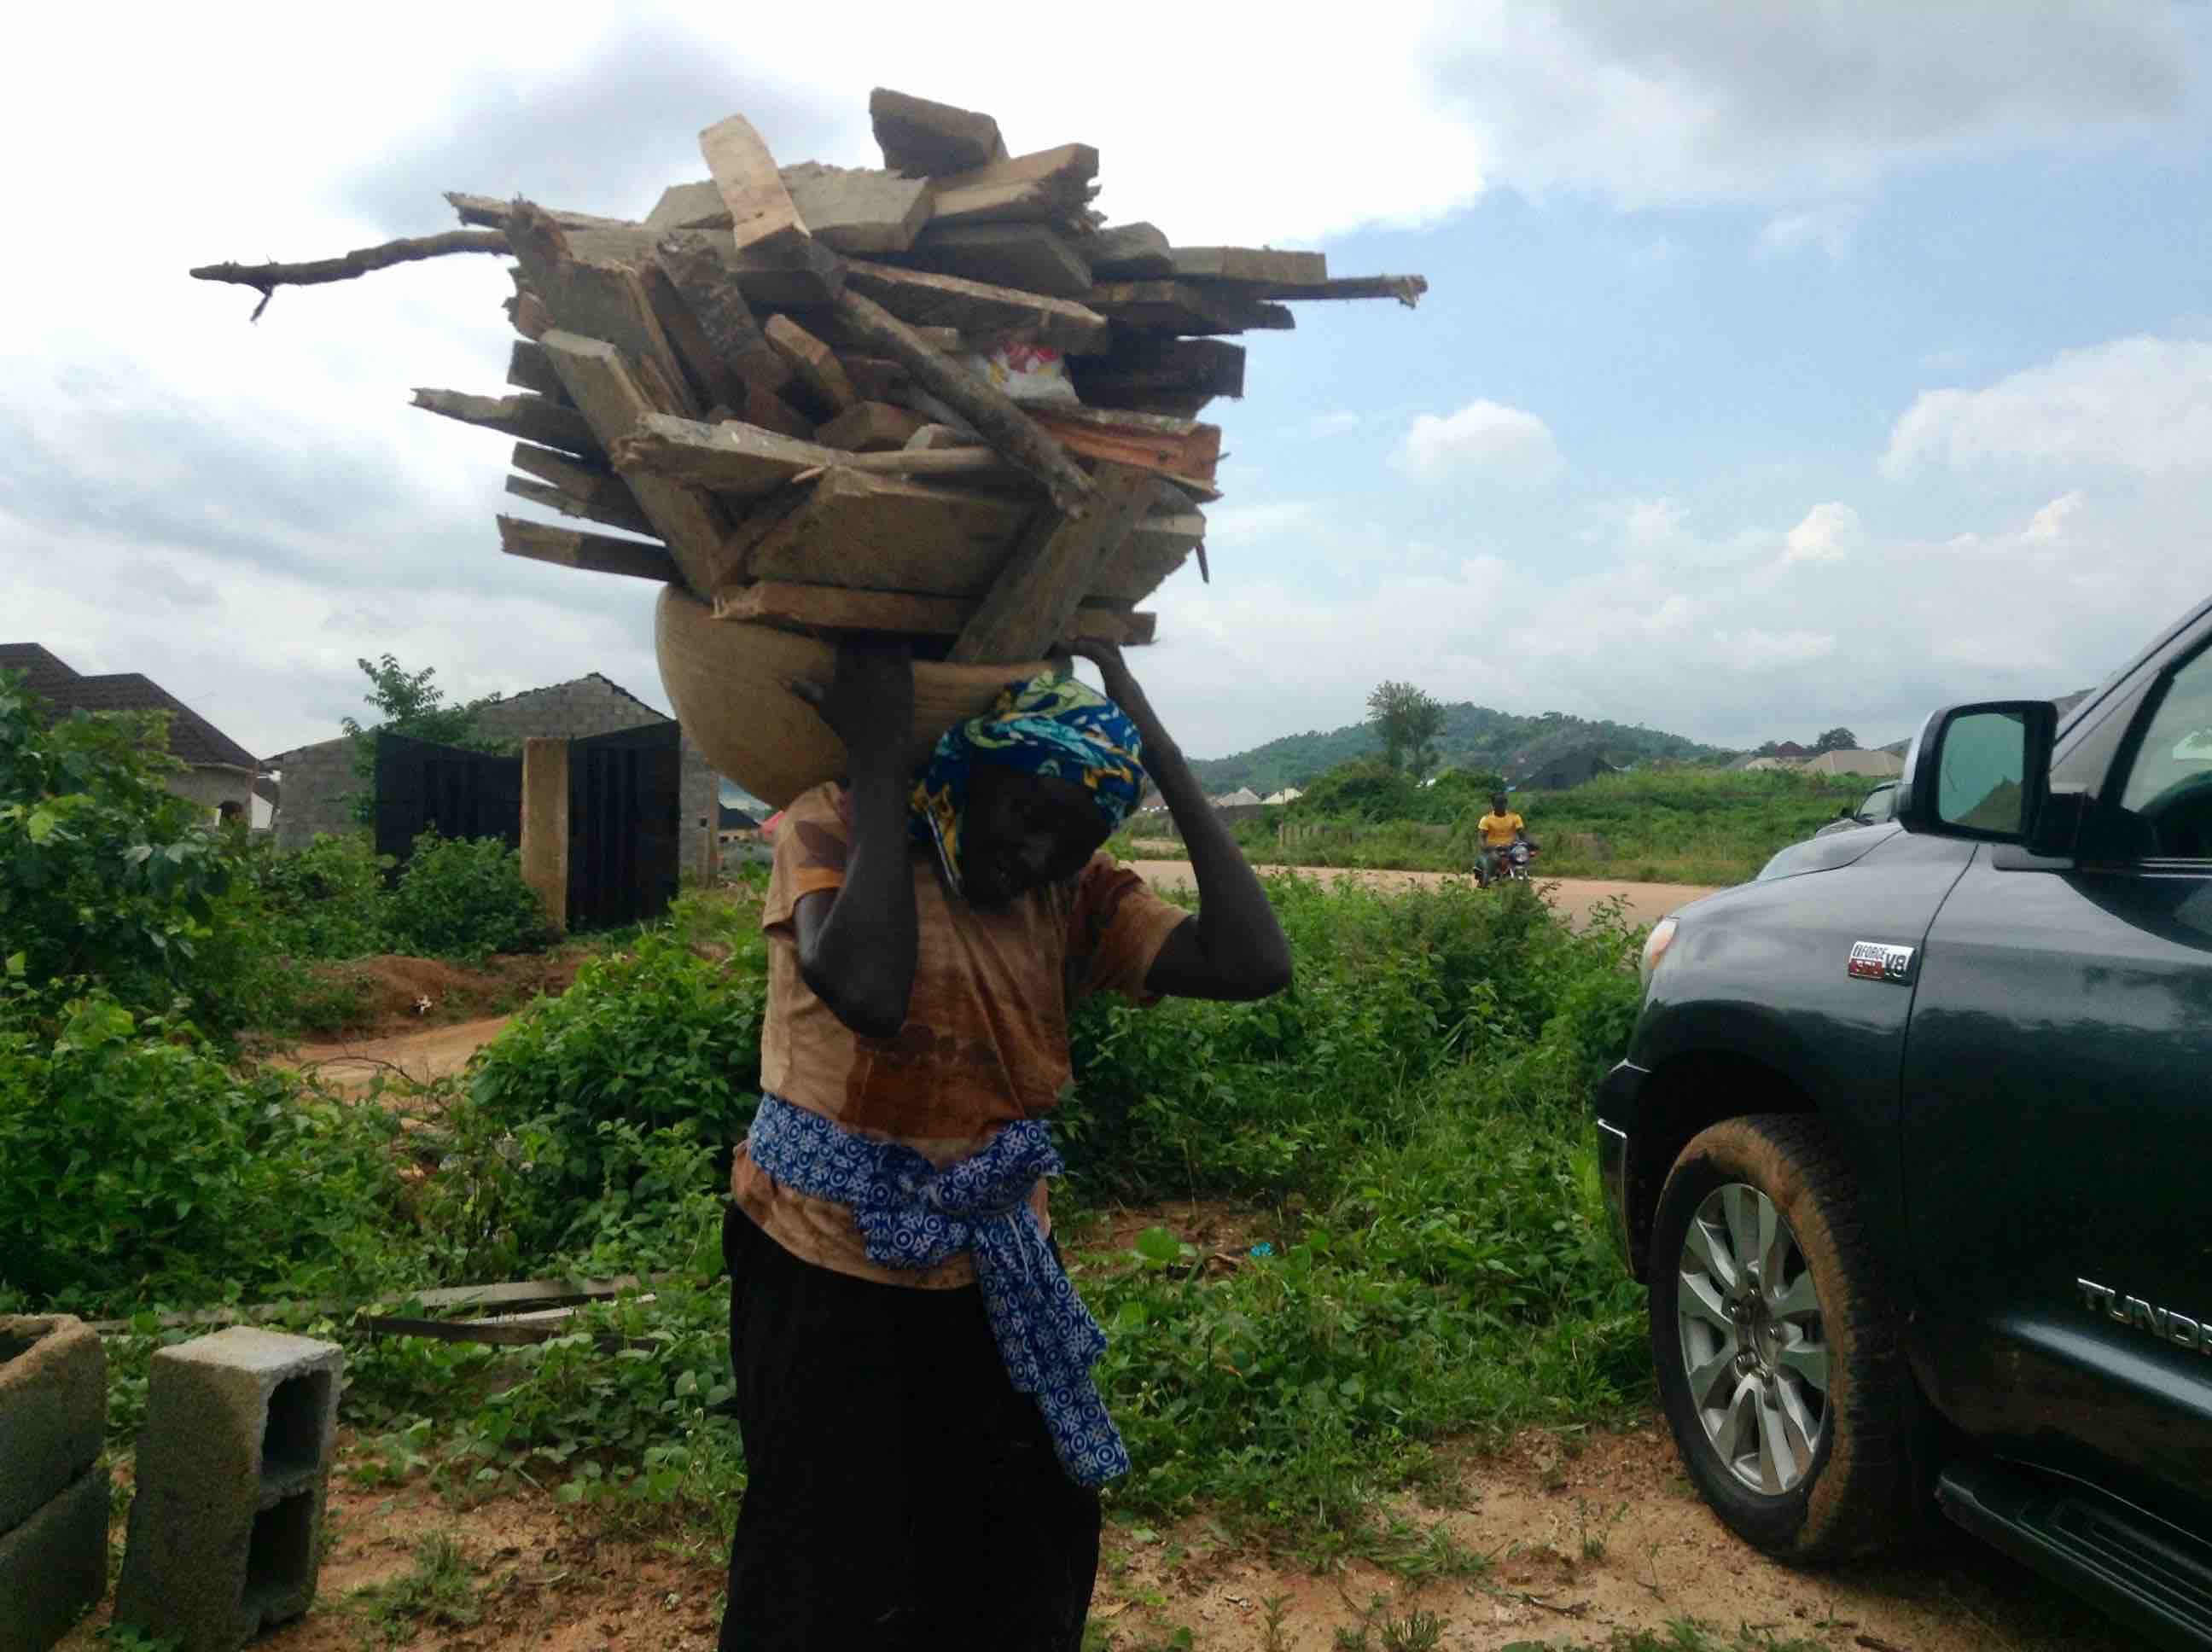 Gbagyi woman carrying a load of firewood in Ushafa Village, Abuja, Nigeria. #JujuFilms